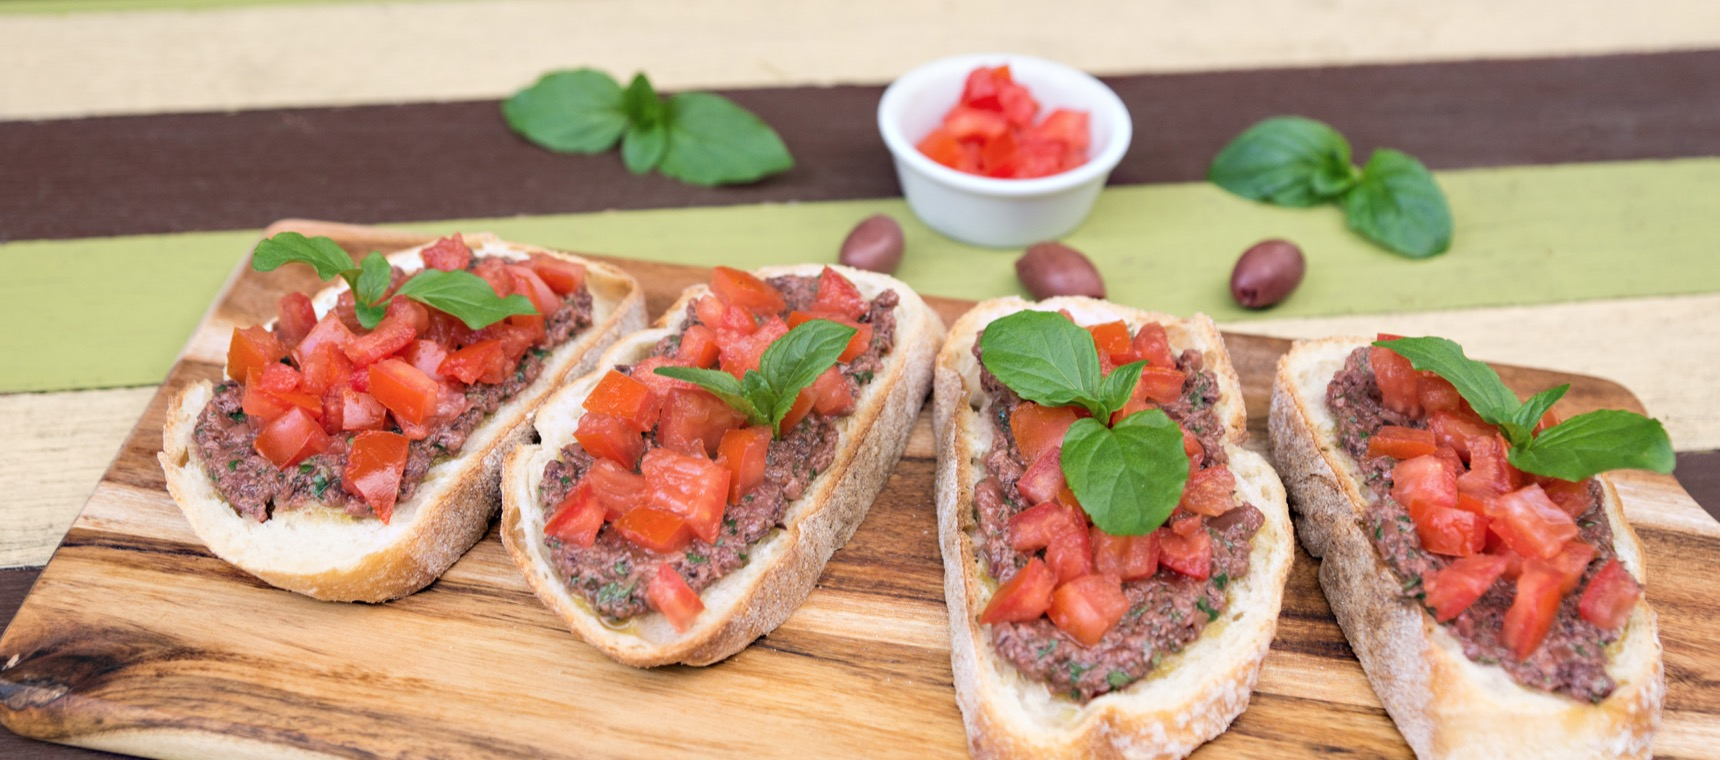 Olive, Basil and Tomato Bruschetta